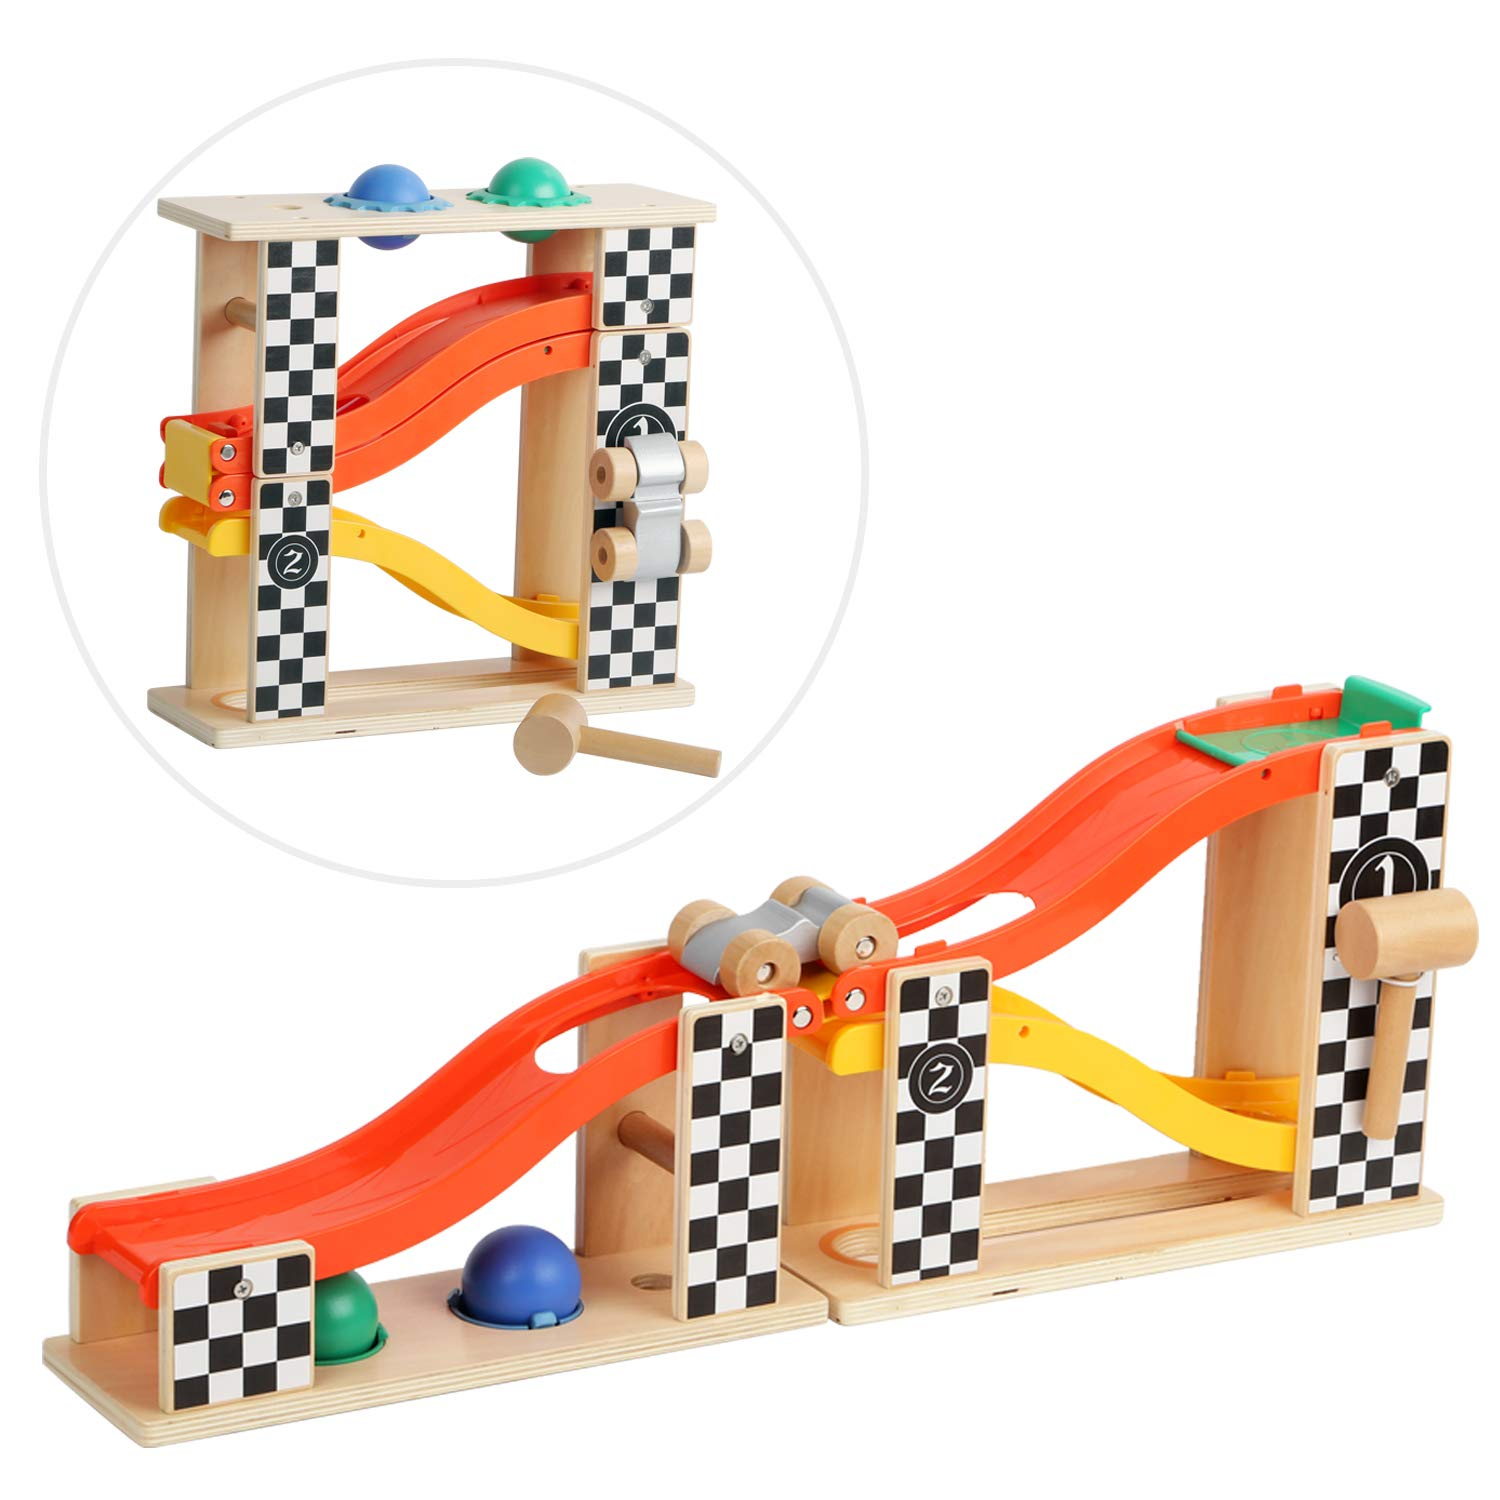 TOP BRIGHT Pound and Roll Tower with Hammer and 2 Balls Ramp Racer Wooden Toy for Toddlers SUN TOP